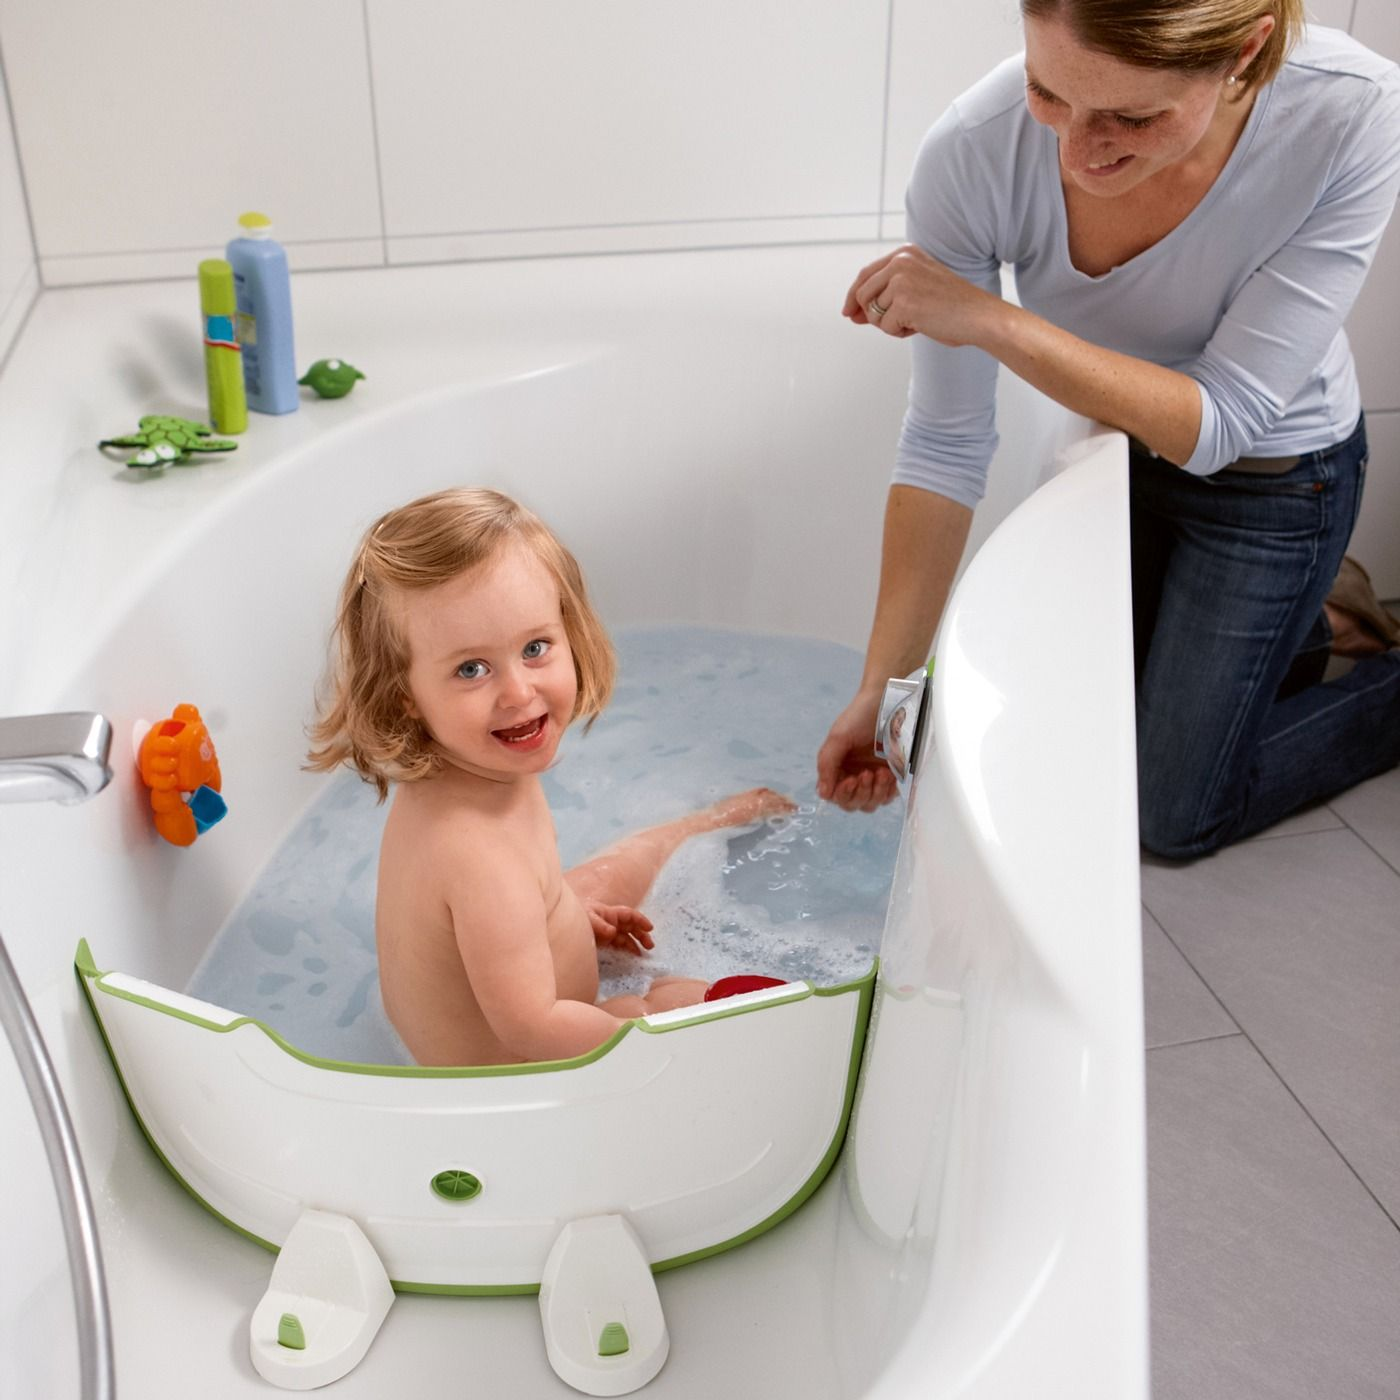 Badewanne Kleinkind Flexible Divider That Can Turn A Regular Bathtub Into A Baby